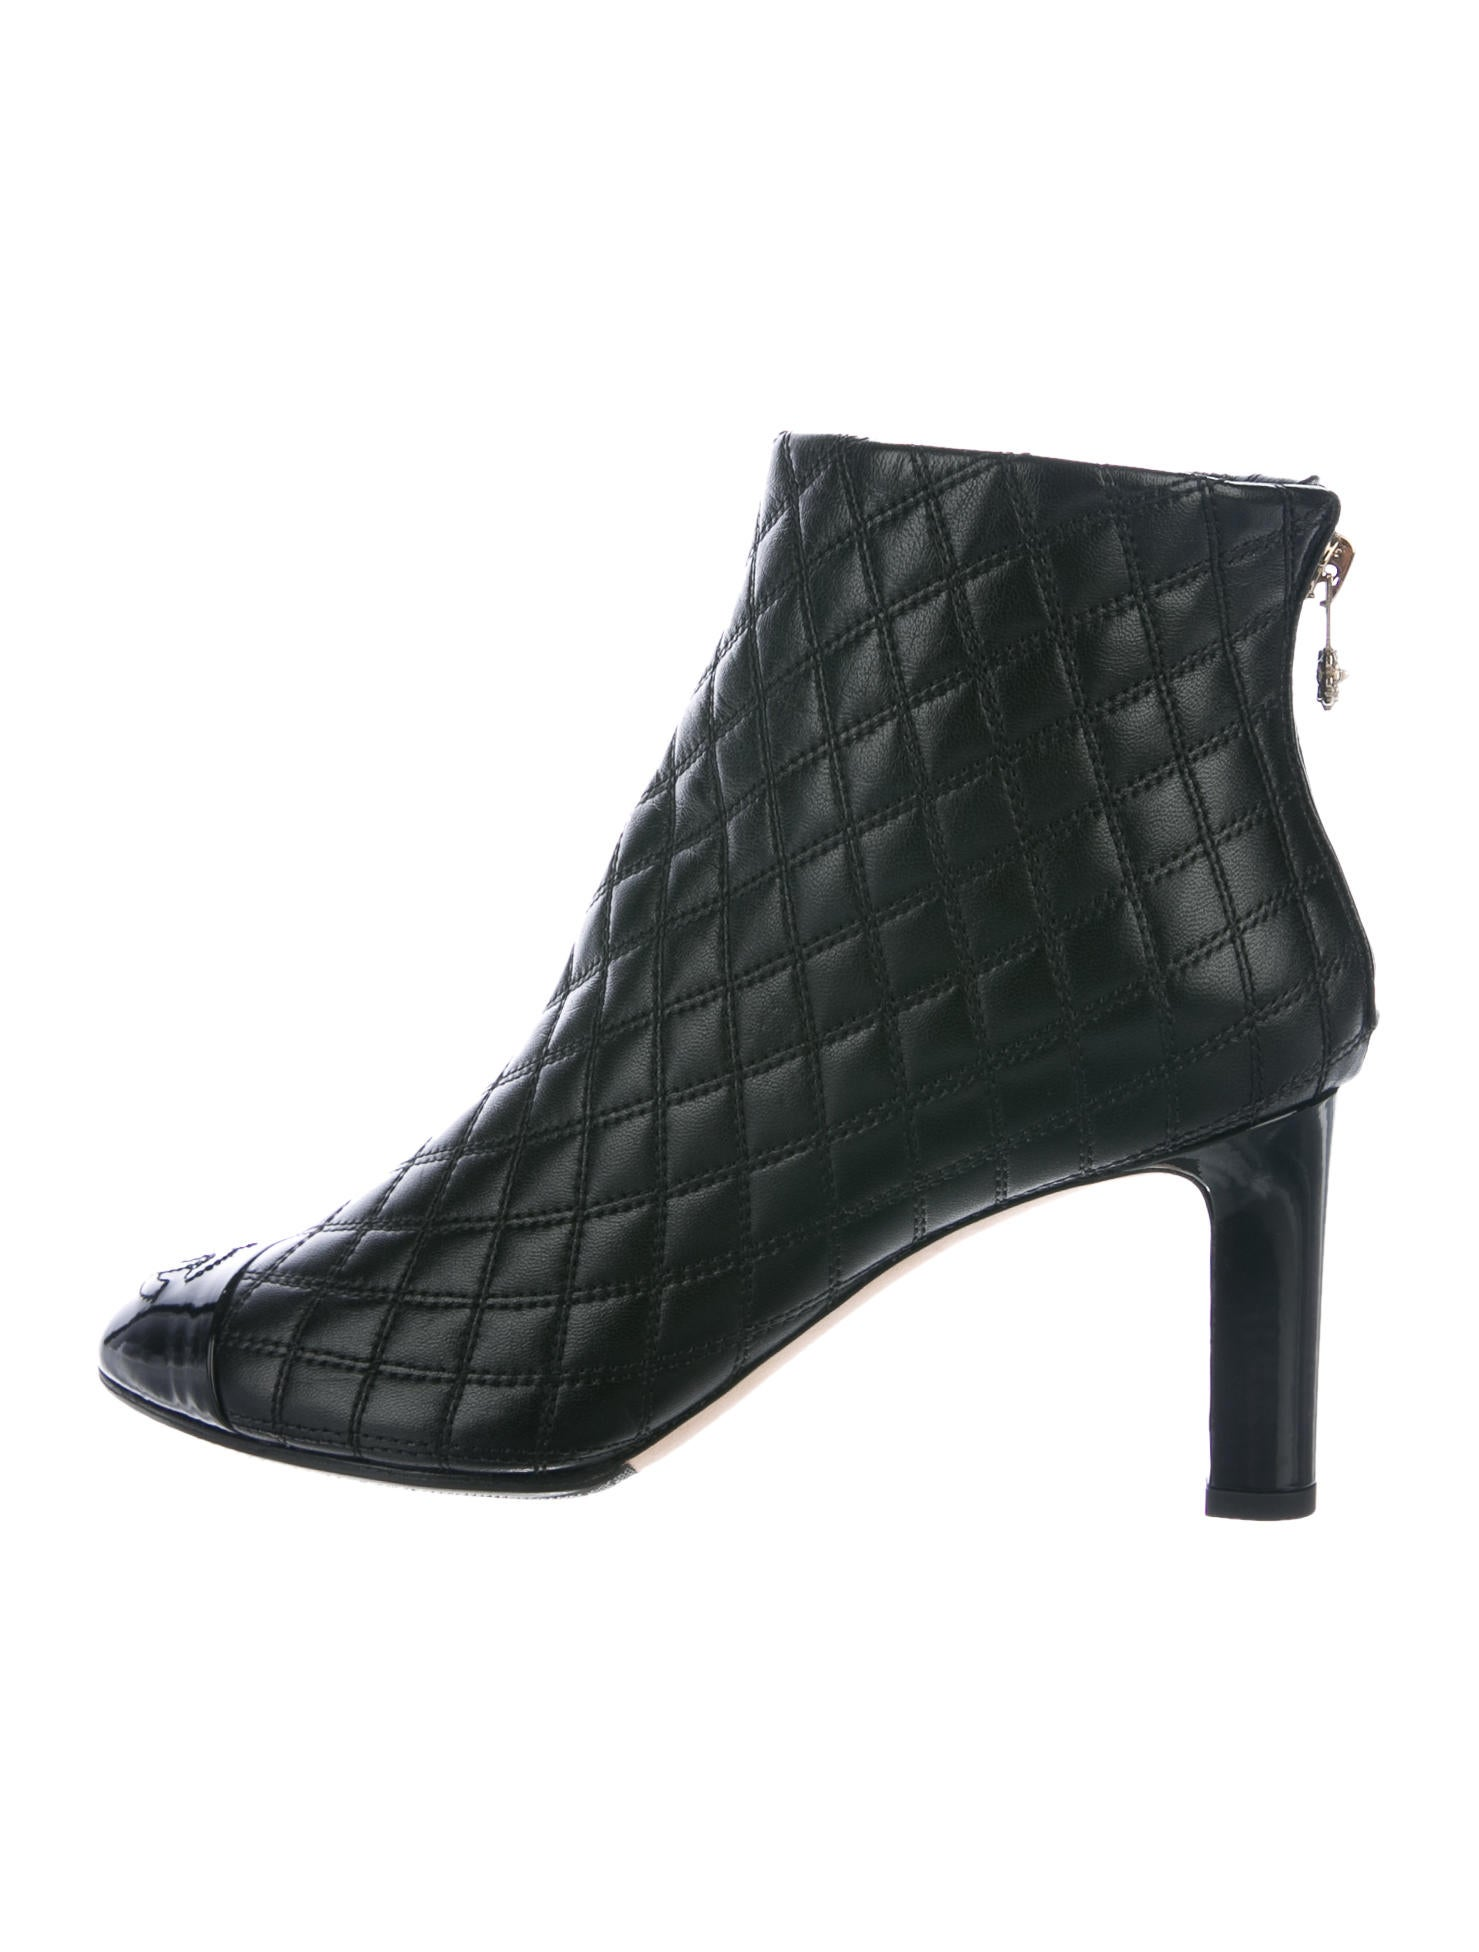 3da465176a43 Chanel CC Quilted Leather Ankle Boots - Shoes - CHA211396